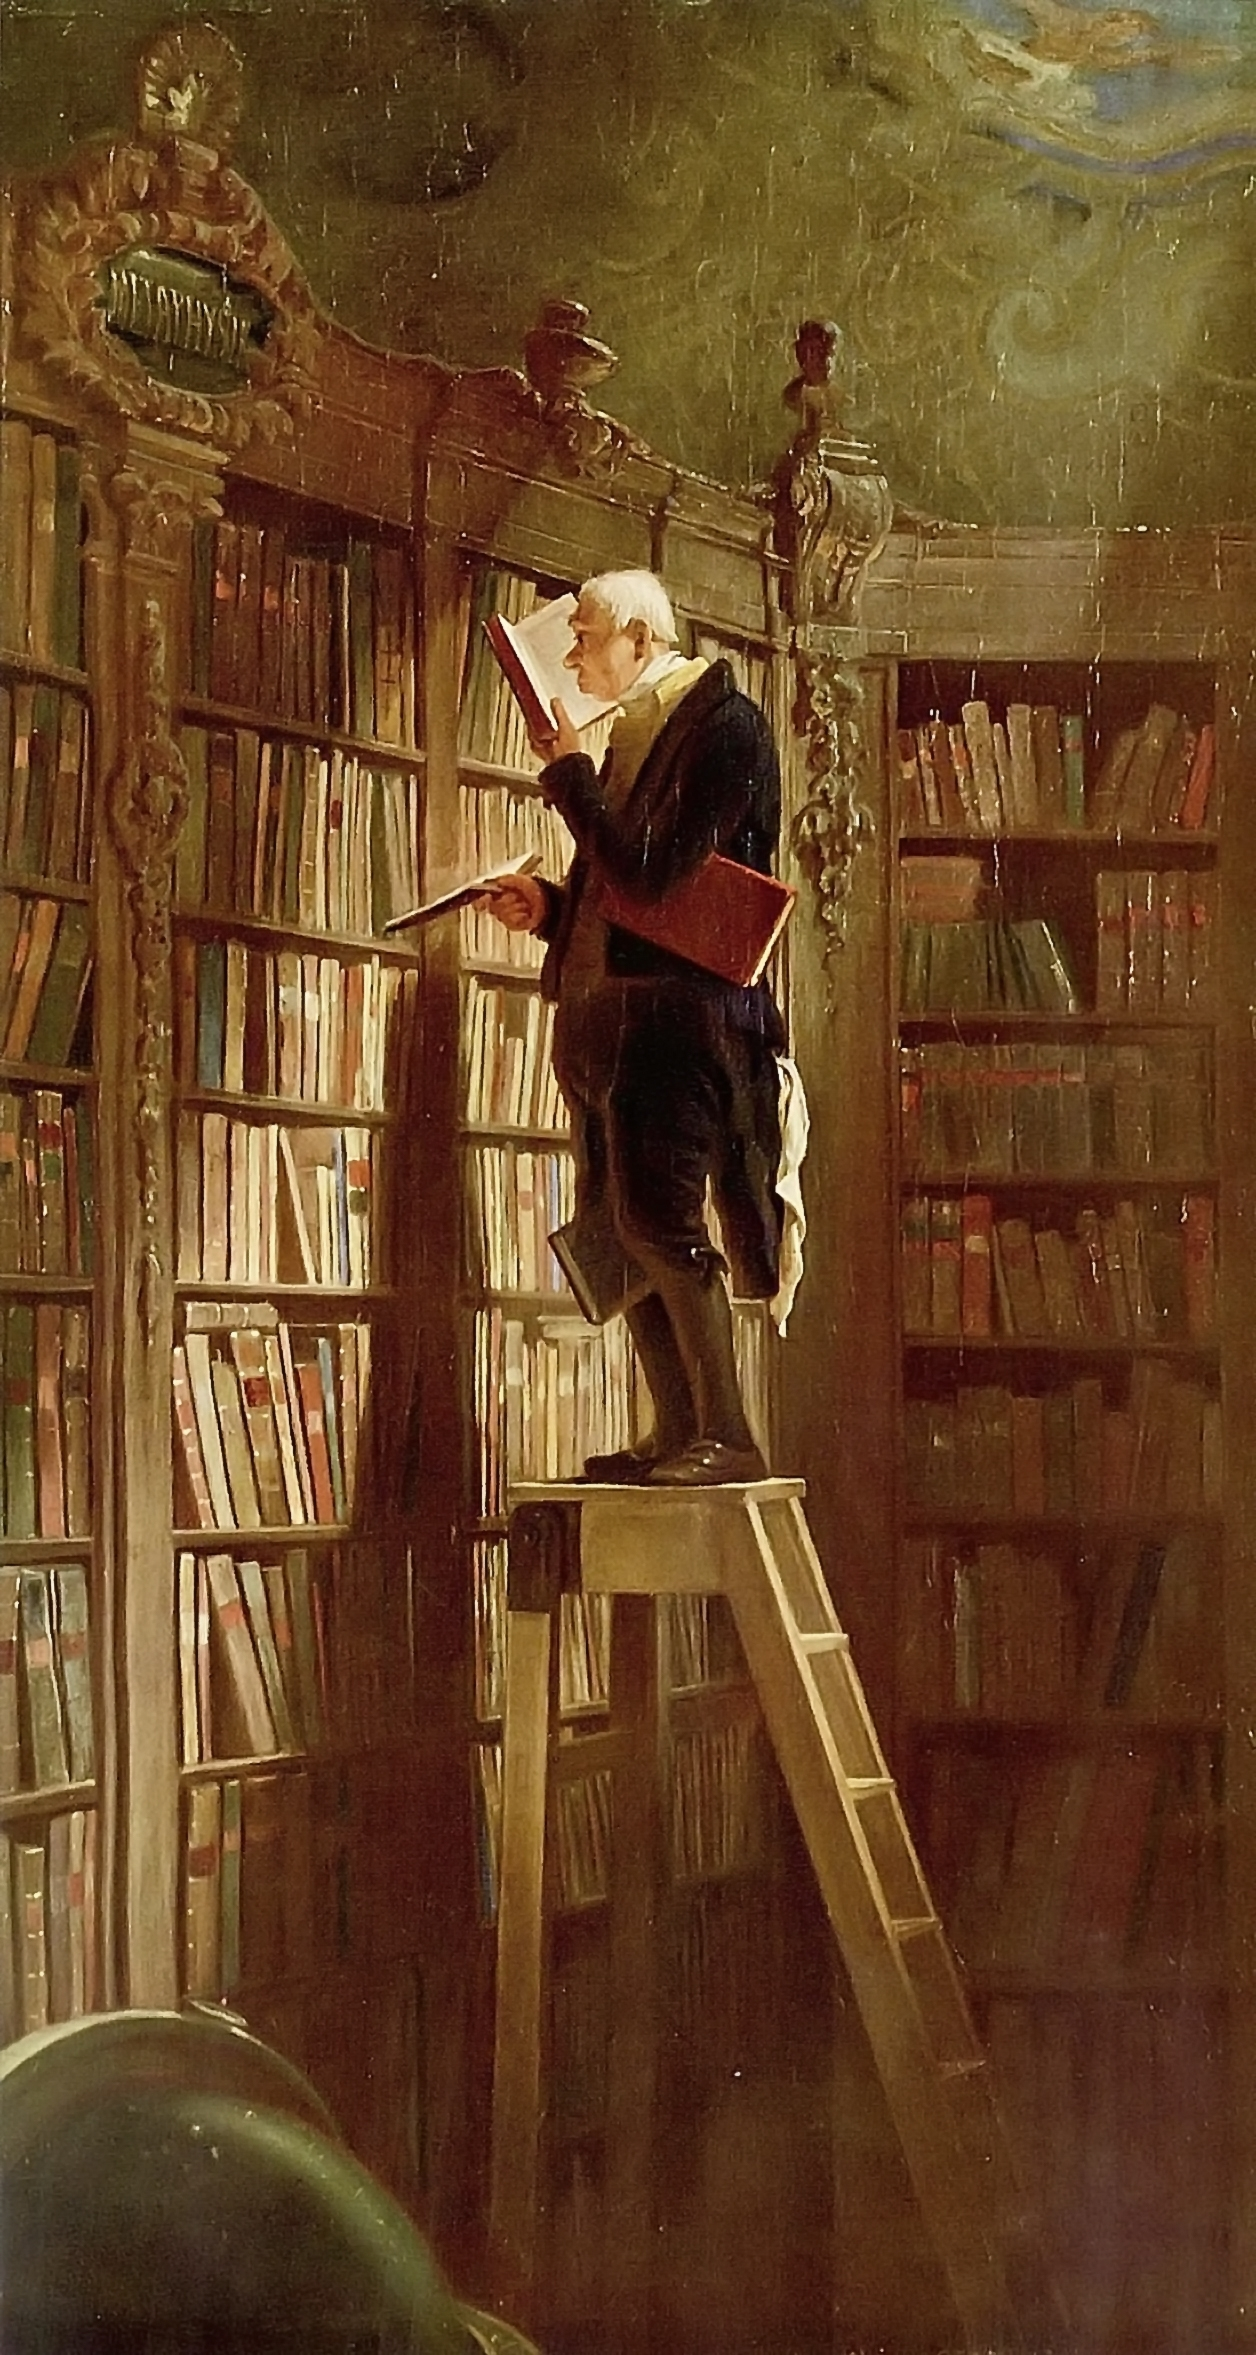 The Bookworm, 1850, by Carl Spitzweg.